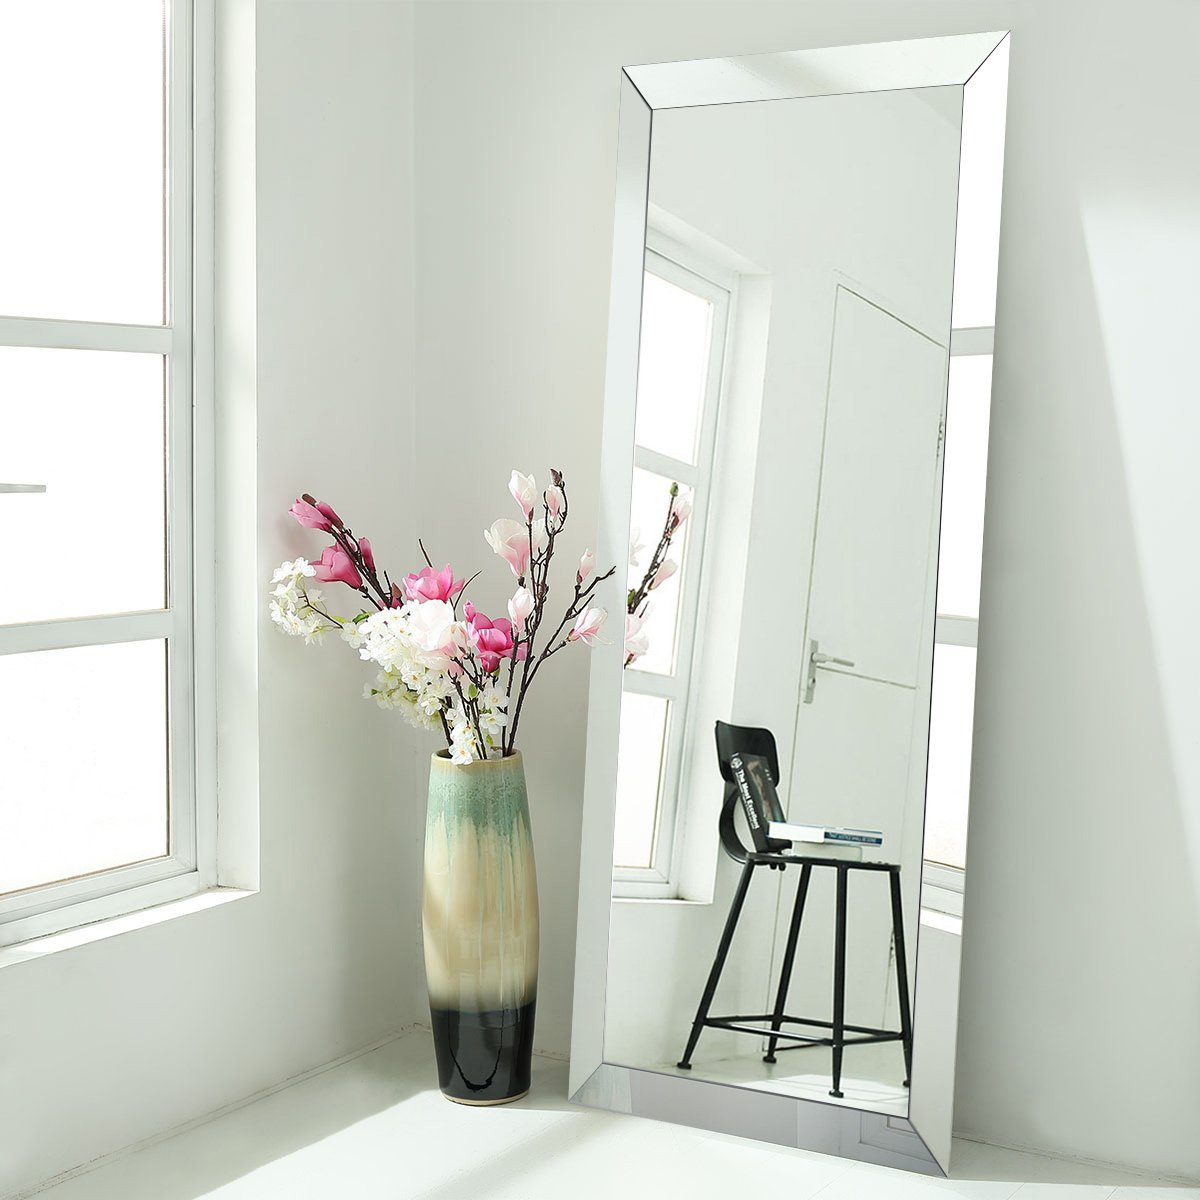 Floor Mirrors Full Length Large Size Mirrored Bevel Framed Mirror for Bedroom Sitting Room Bathroom (30'' x 70'') by BluEye